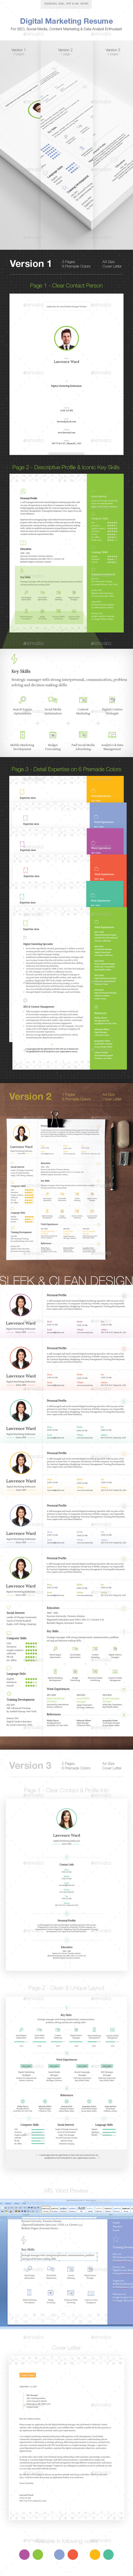 Marketer Resume - Resumes Stationery